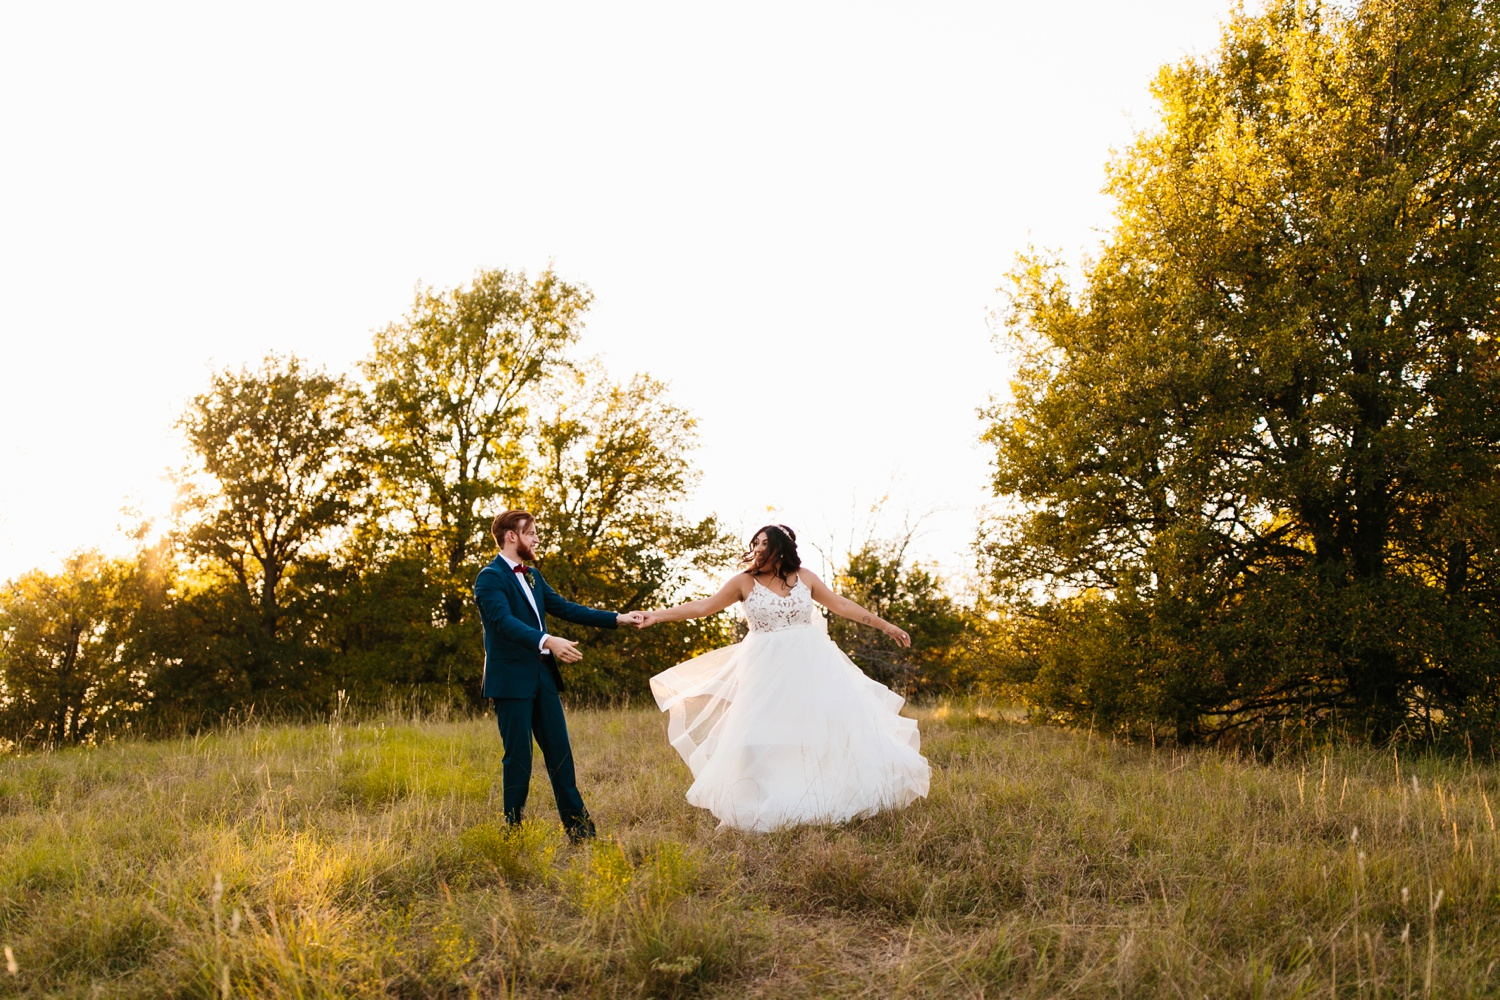 Grant + Lysette | a vibrant, deep burgundy and navy, and mixed metals wedding at Hidden Pines Chapel by North Texas Wedding Photographer Rachel Meagan Photography 218